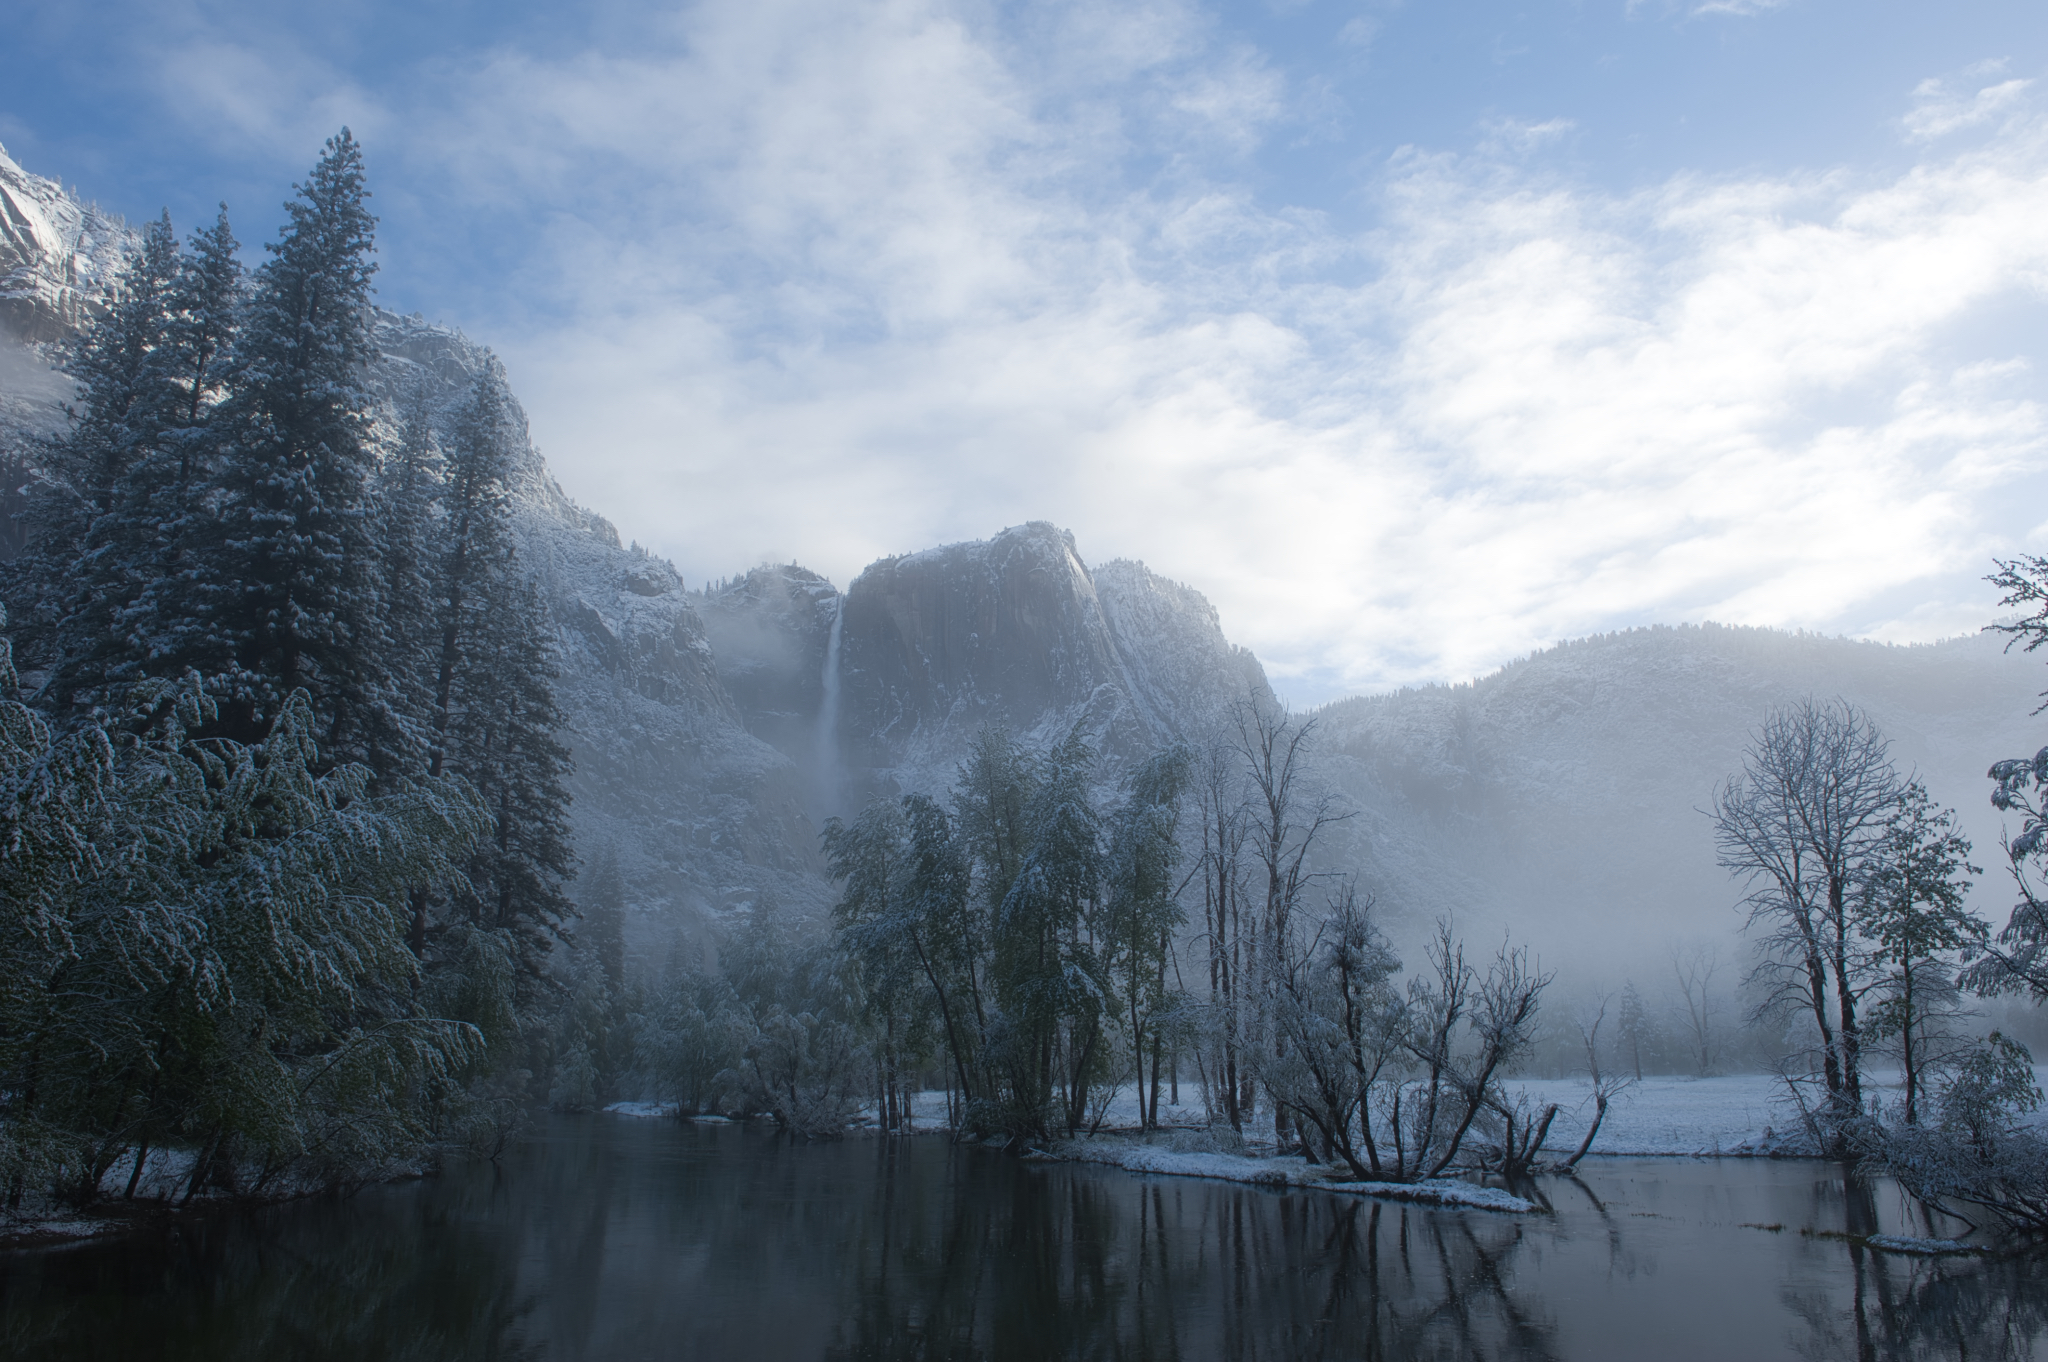 Yosemite Un-edited Nikon D3 RAW